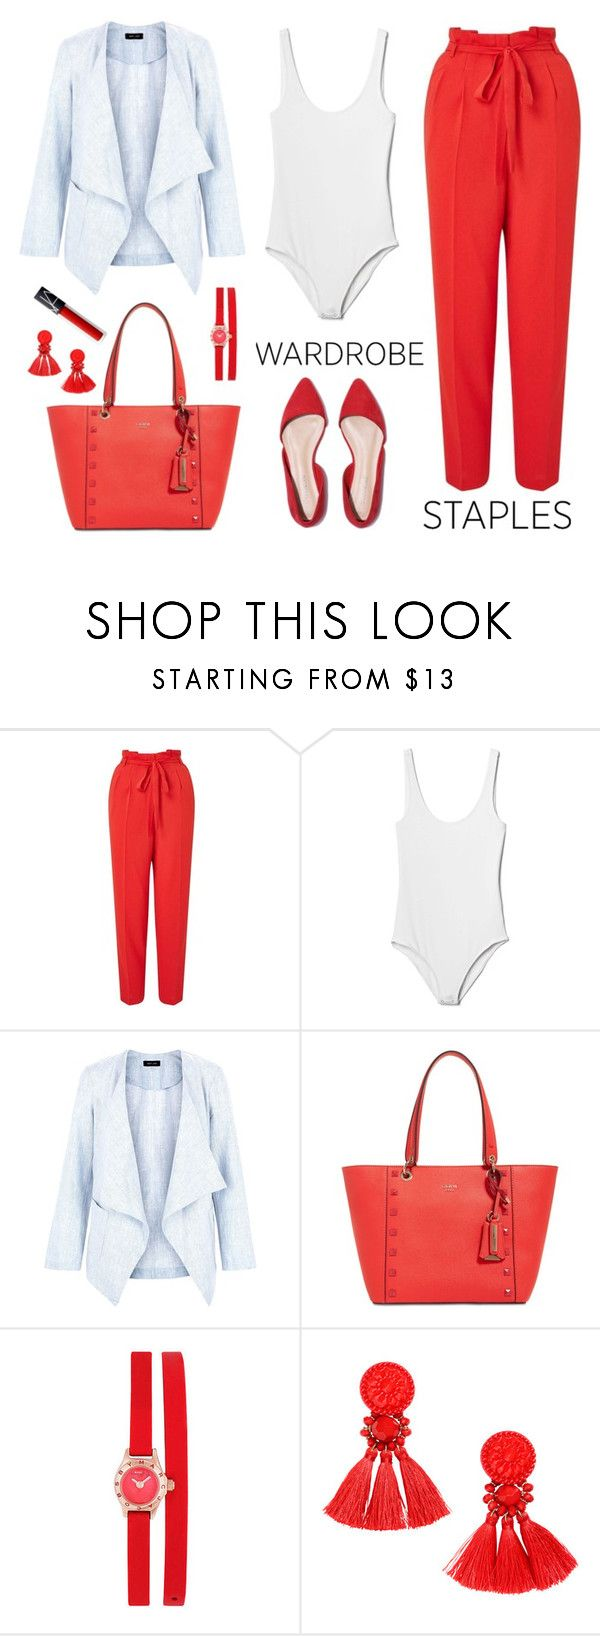 """🎈🎈🎈#wardrobestaples"" by mz-jill ❤ liked on Polyvore featuring Miss Selfridge, Gap, New Look, GUESS and Marc by Marc Jacobs"